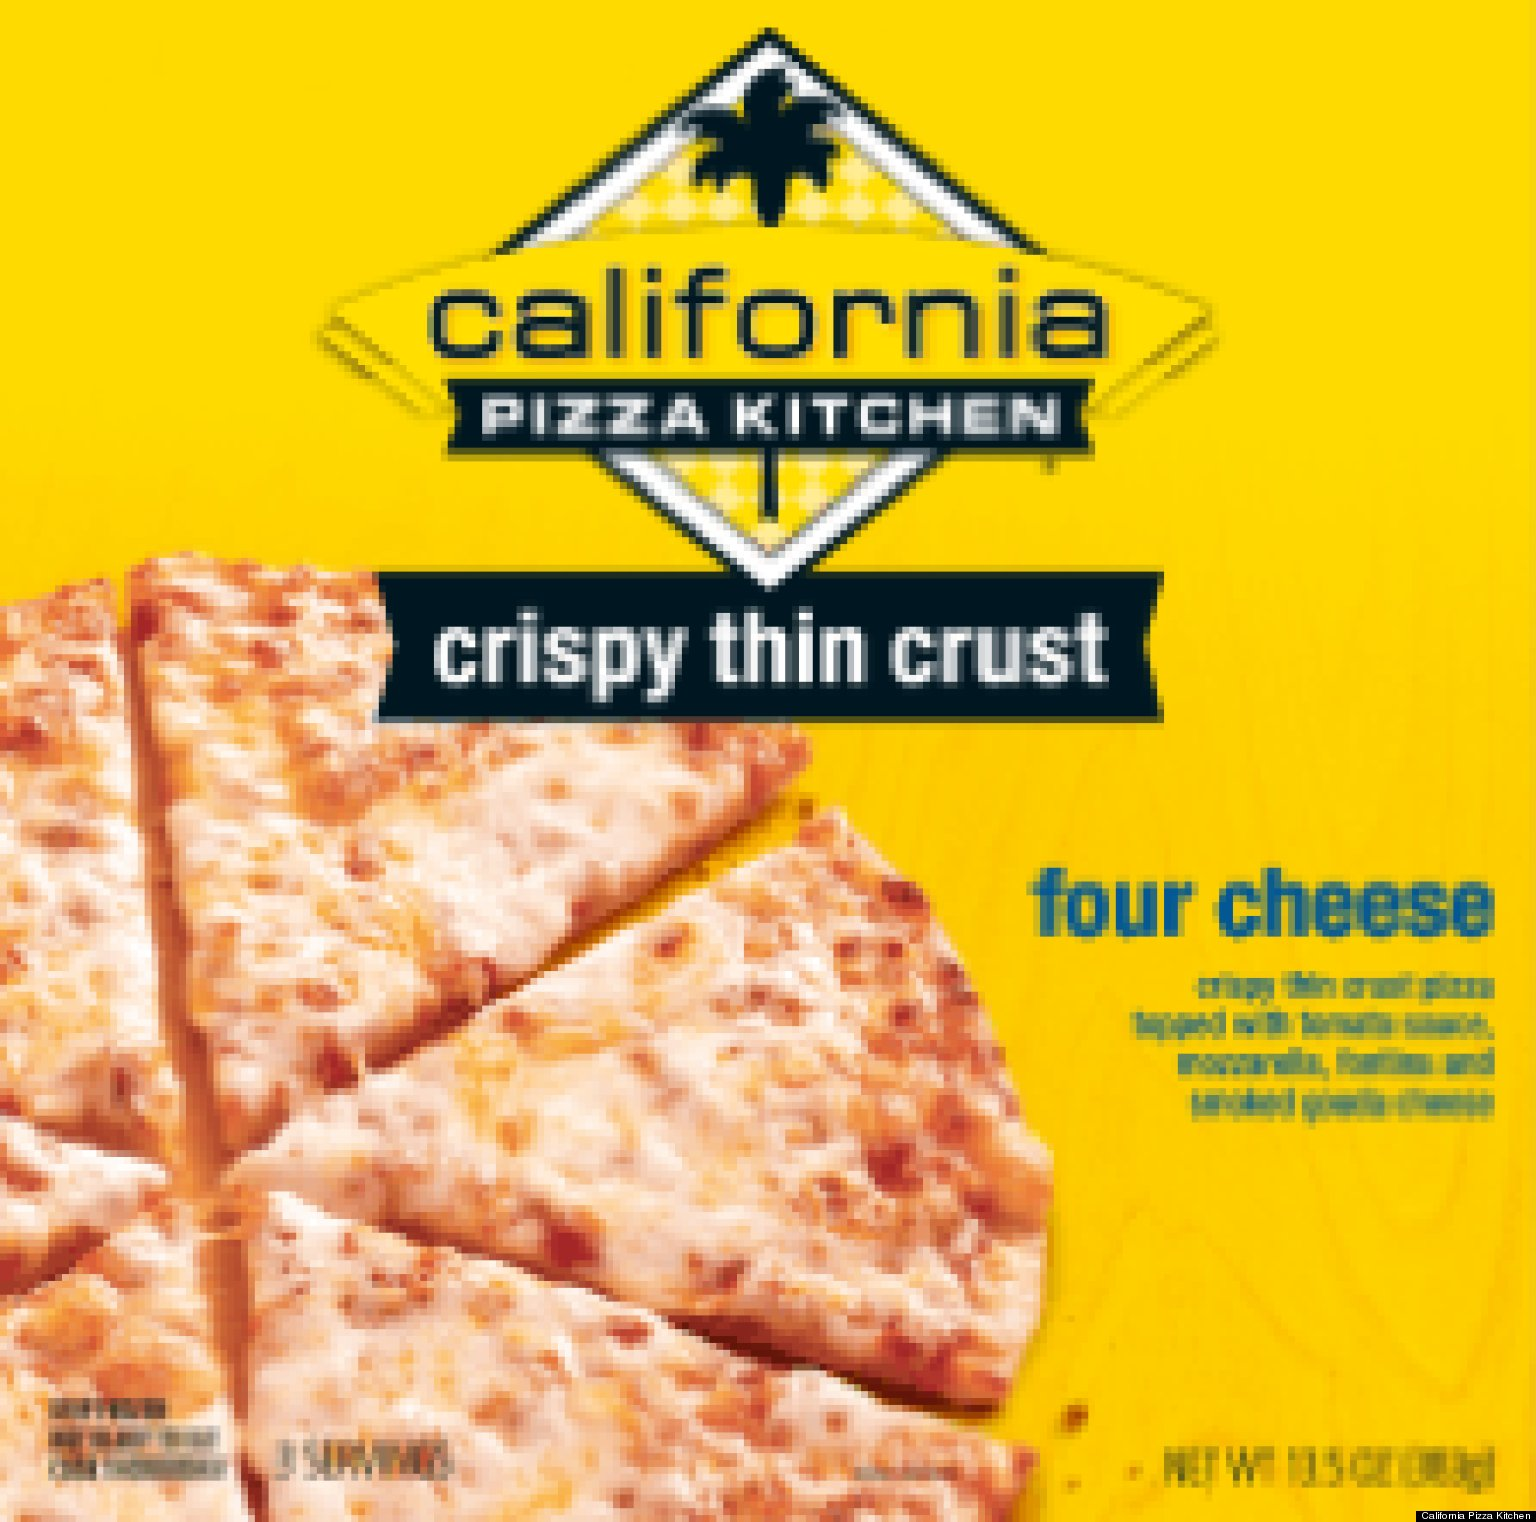 Nestle, California Pizza Kitchen Are U0027Poisoningu0027 Consumers, Woman Claims In  $5 Million Lawsuit | HuffPost